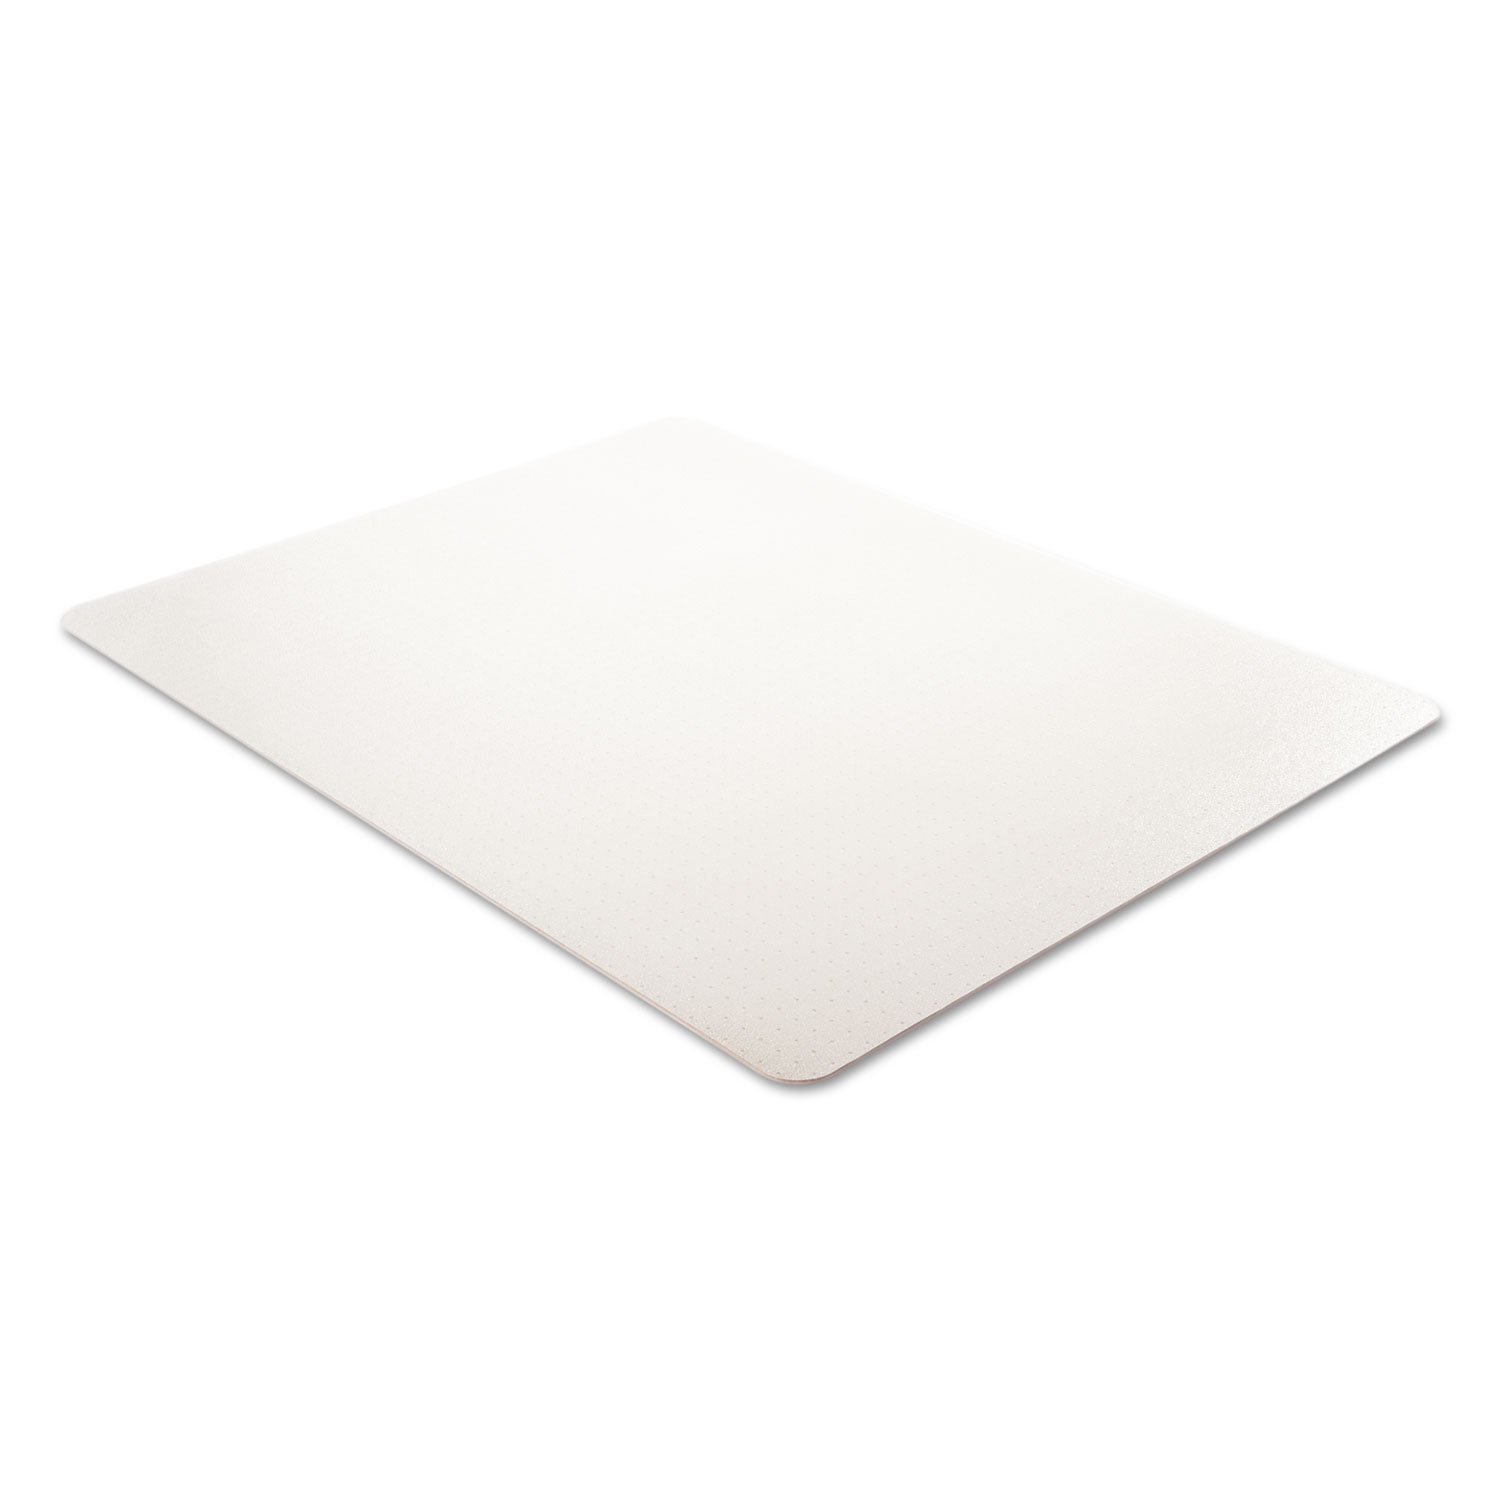 office chair mat 45 x 60 sling chaise lounge economat occasional use by deflecto® defcm11442f | ontimesupplies.com